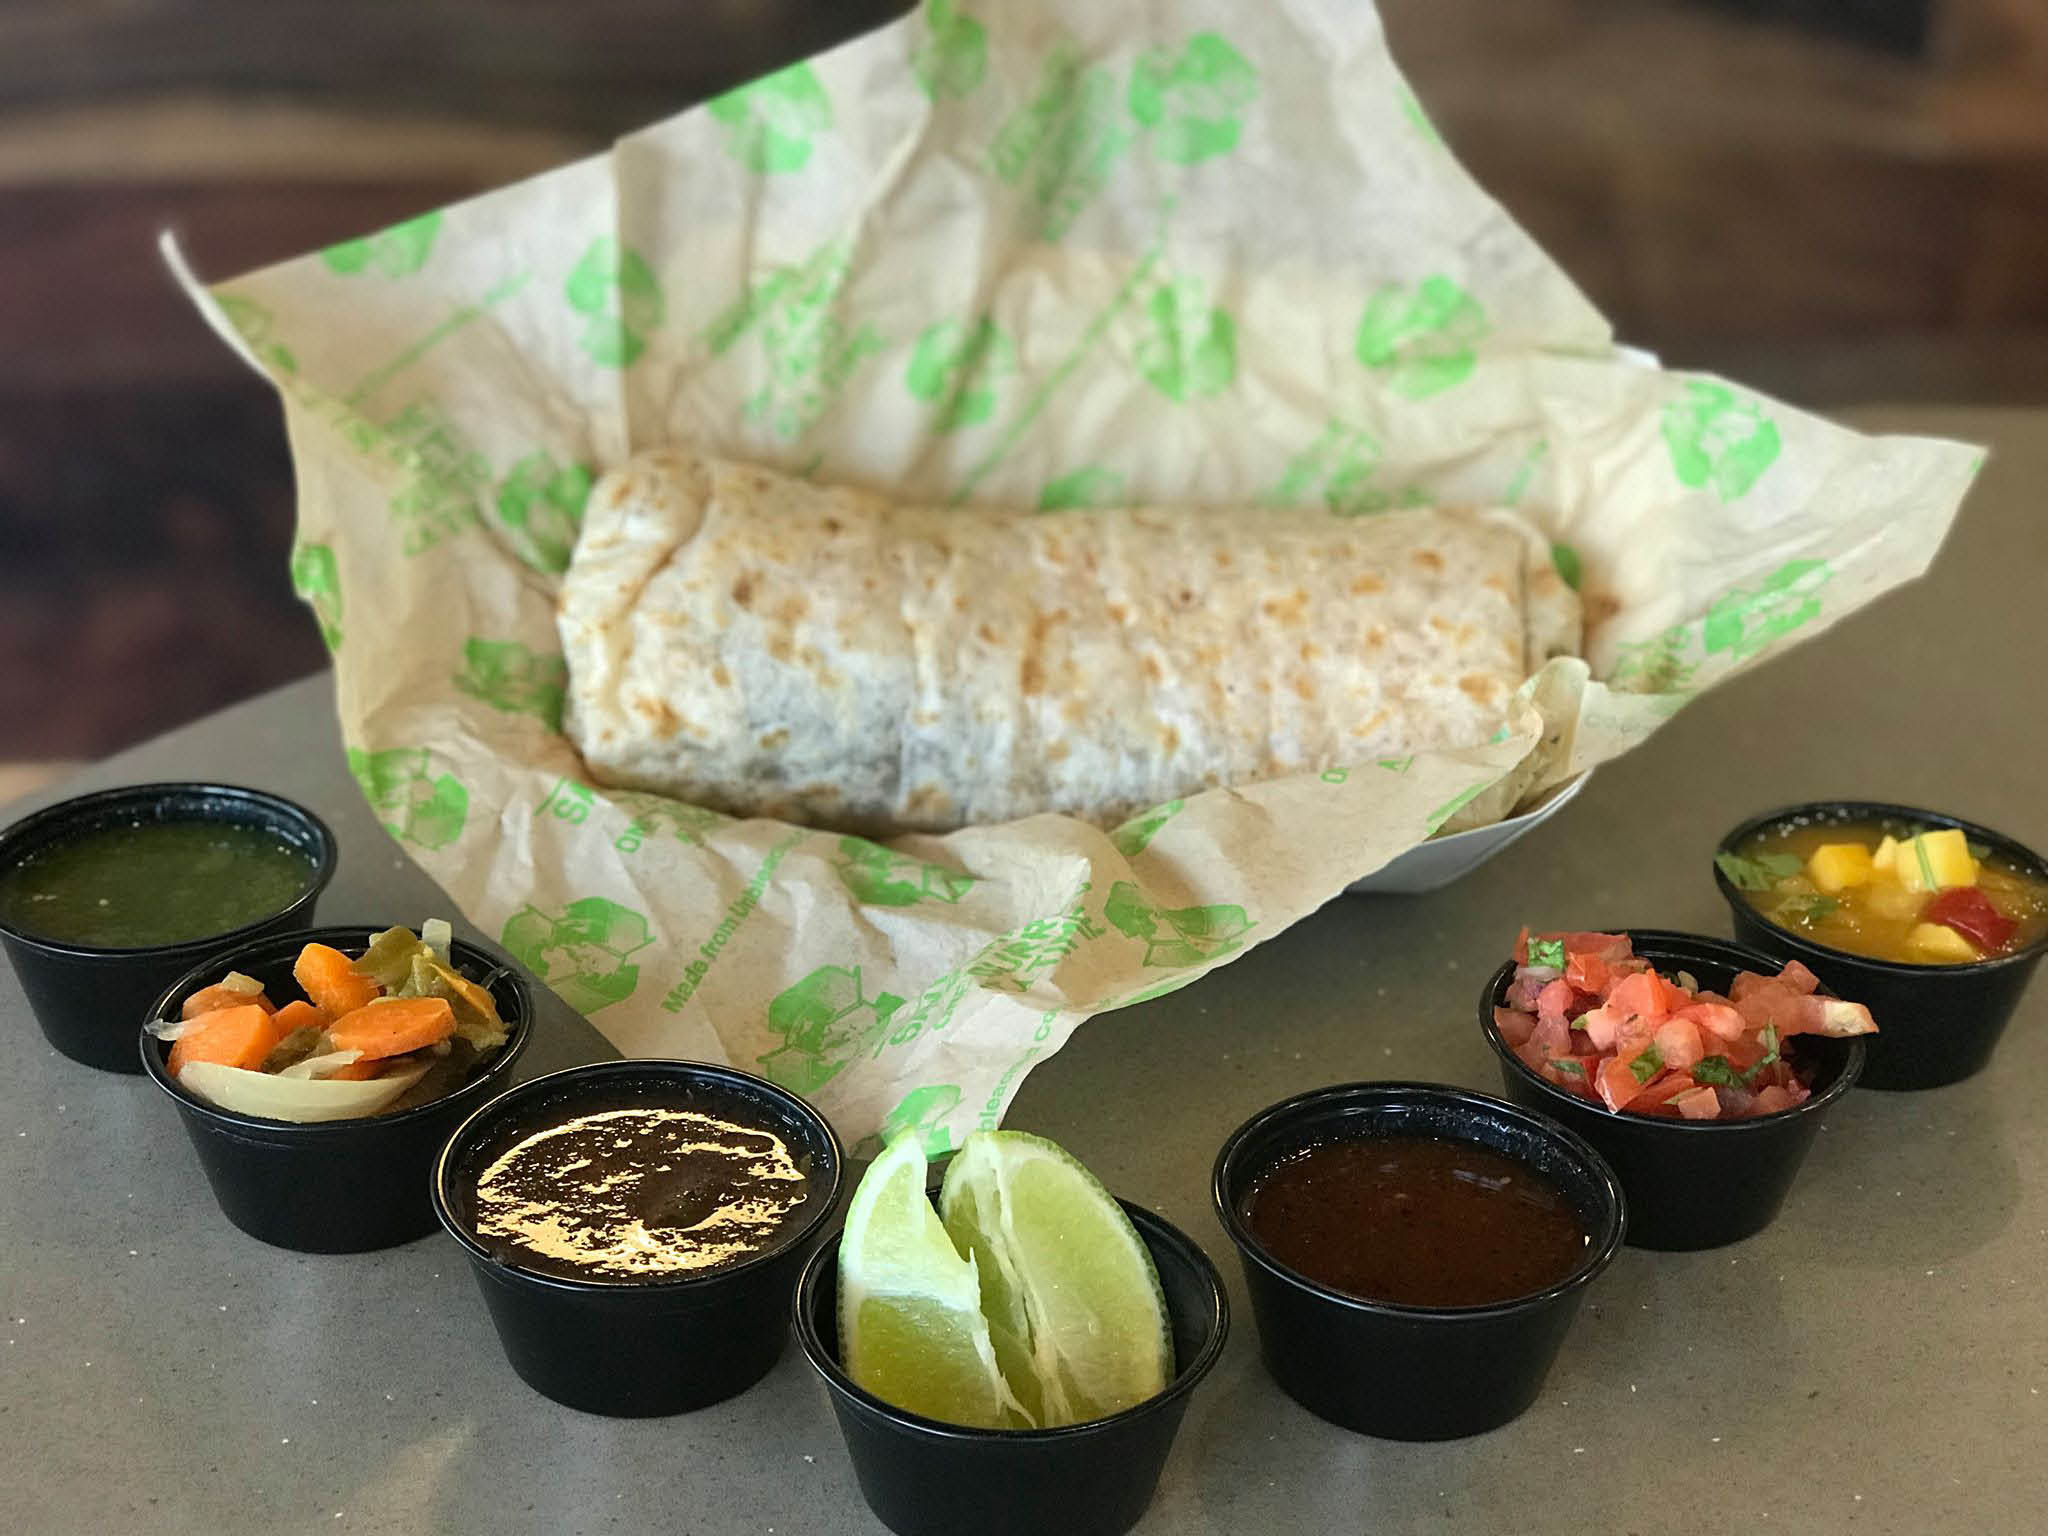 Try our lunch essentials in Danville, CA